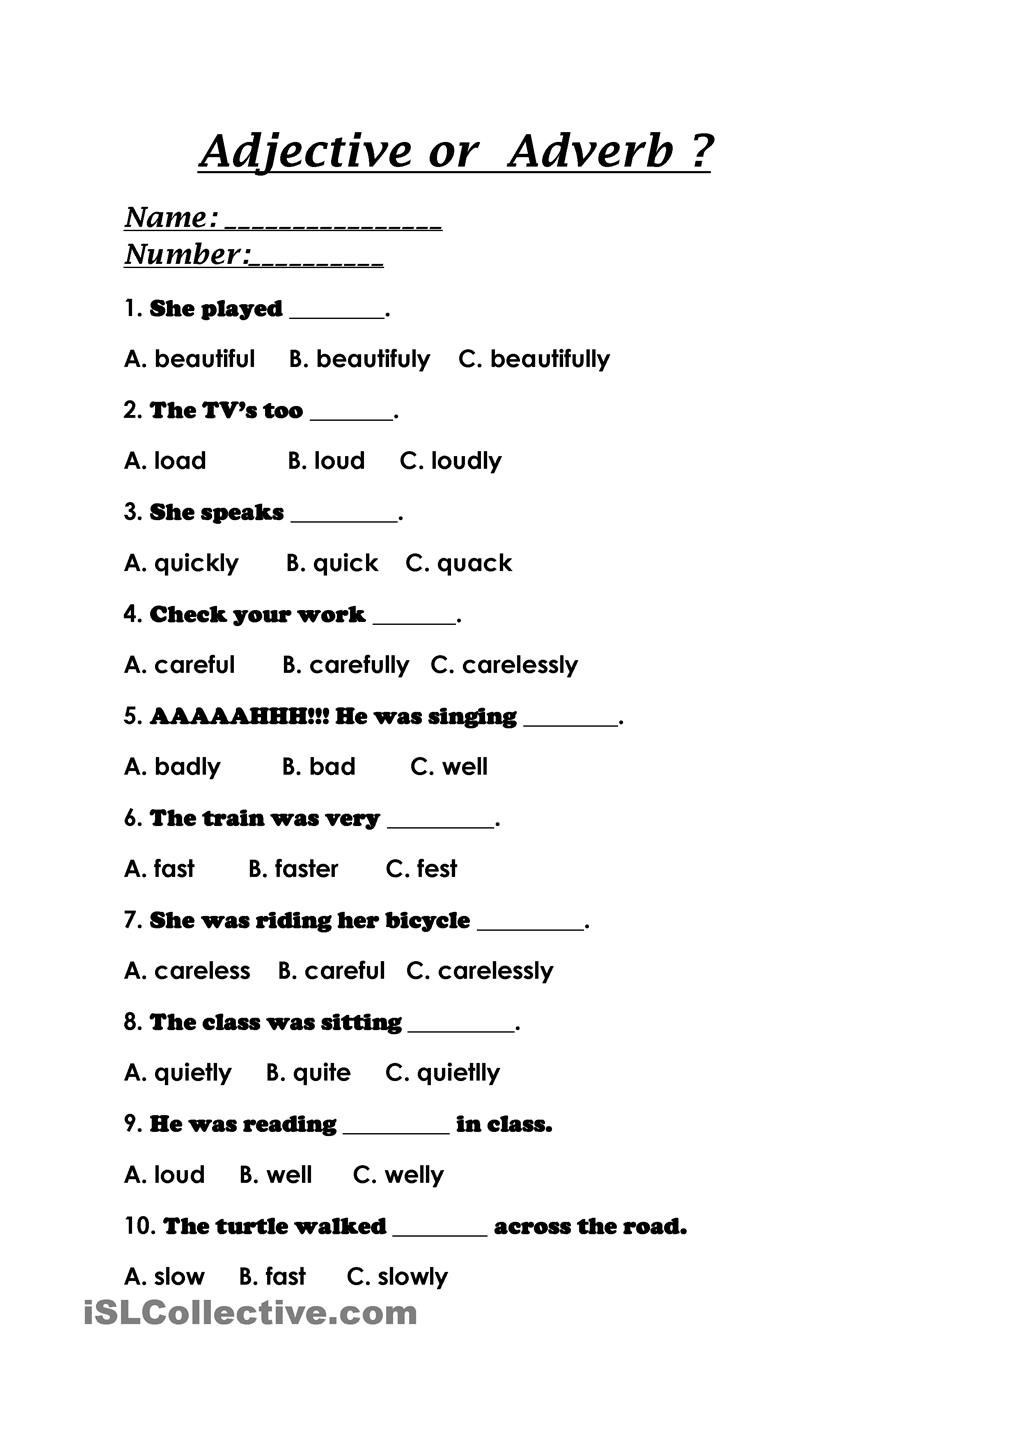 worksheet Adjective Or Adverb Worksheet Fiercebad Worksheet And – Adverb Clause Worksheet